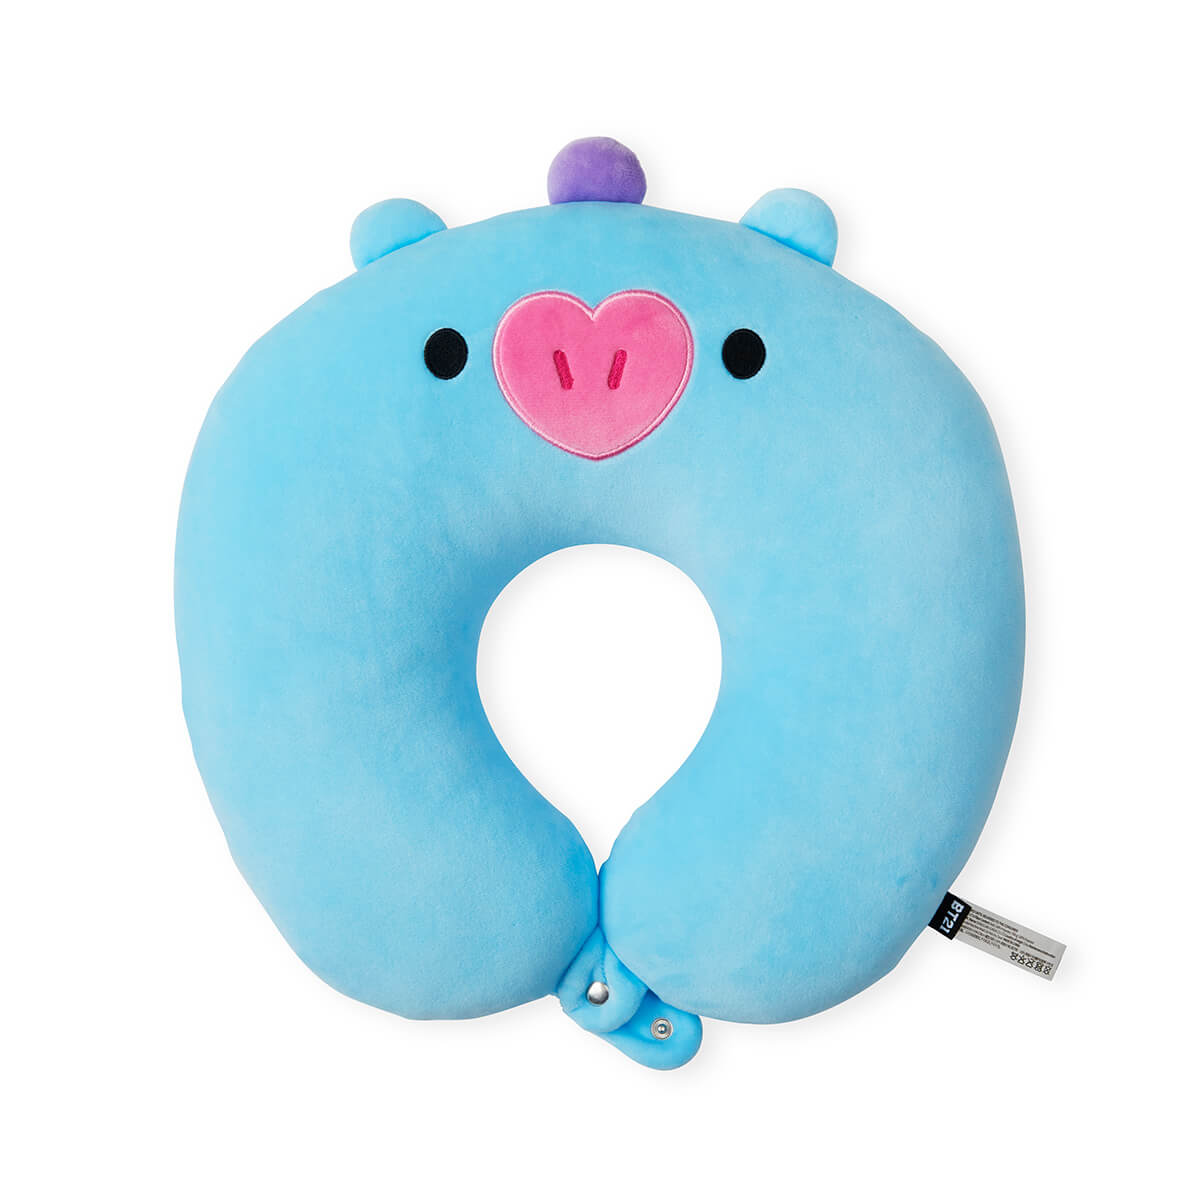 BT21 MANG BABY Travel Neck Pillow w/ Snap Fastener